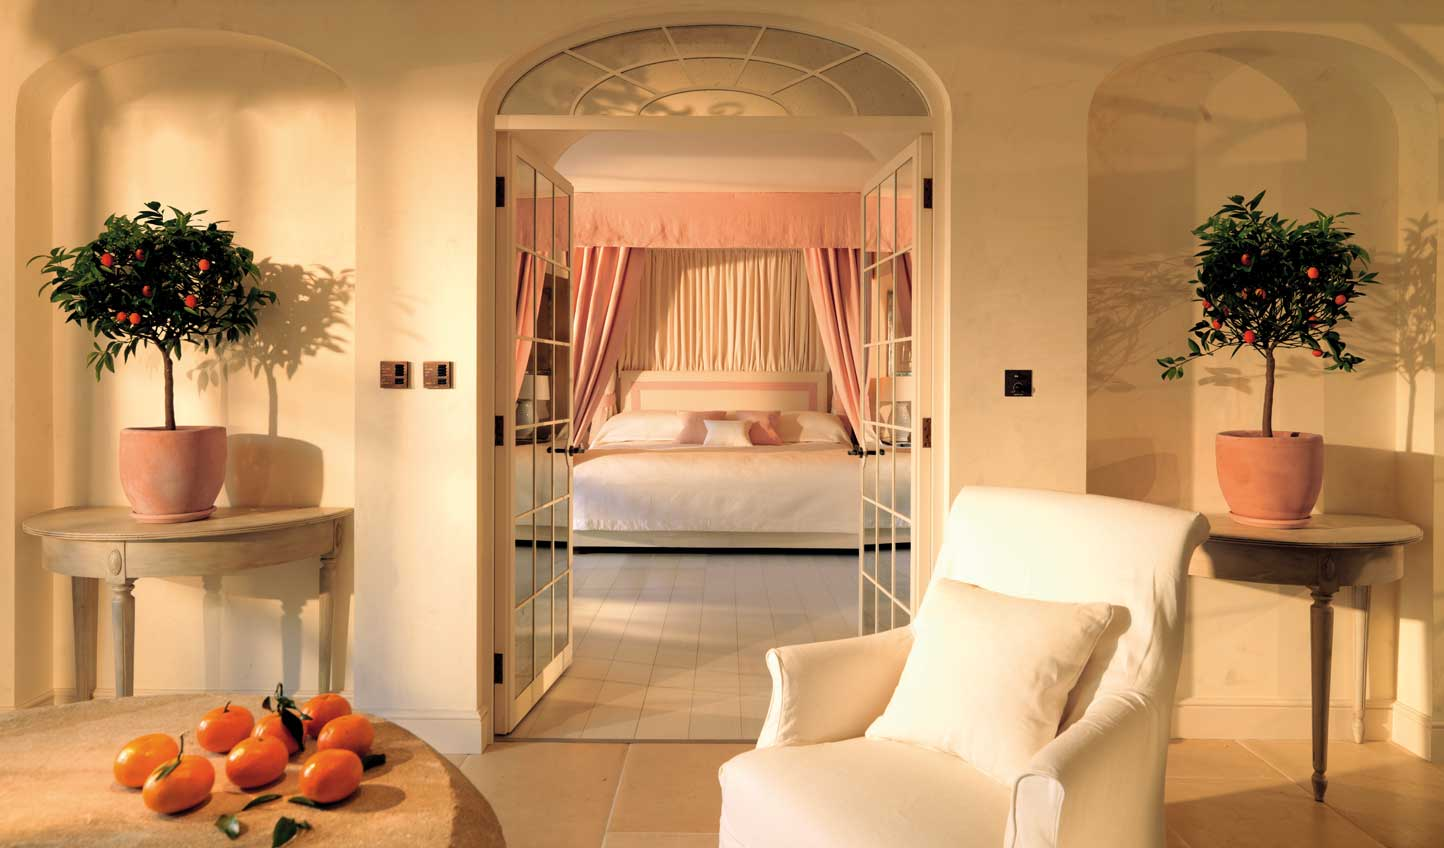 After a two-michelin star dinner, rest your head in one of the gorgeous Le Manoir suites